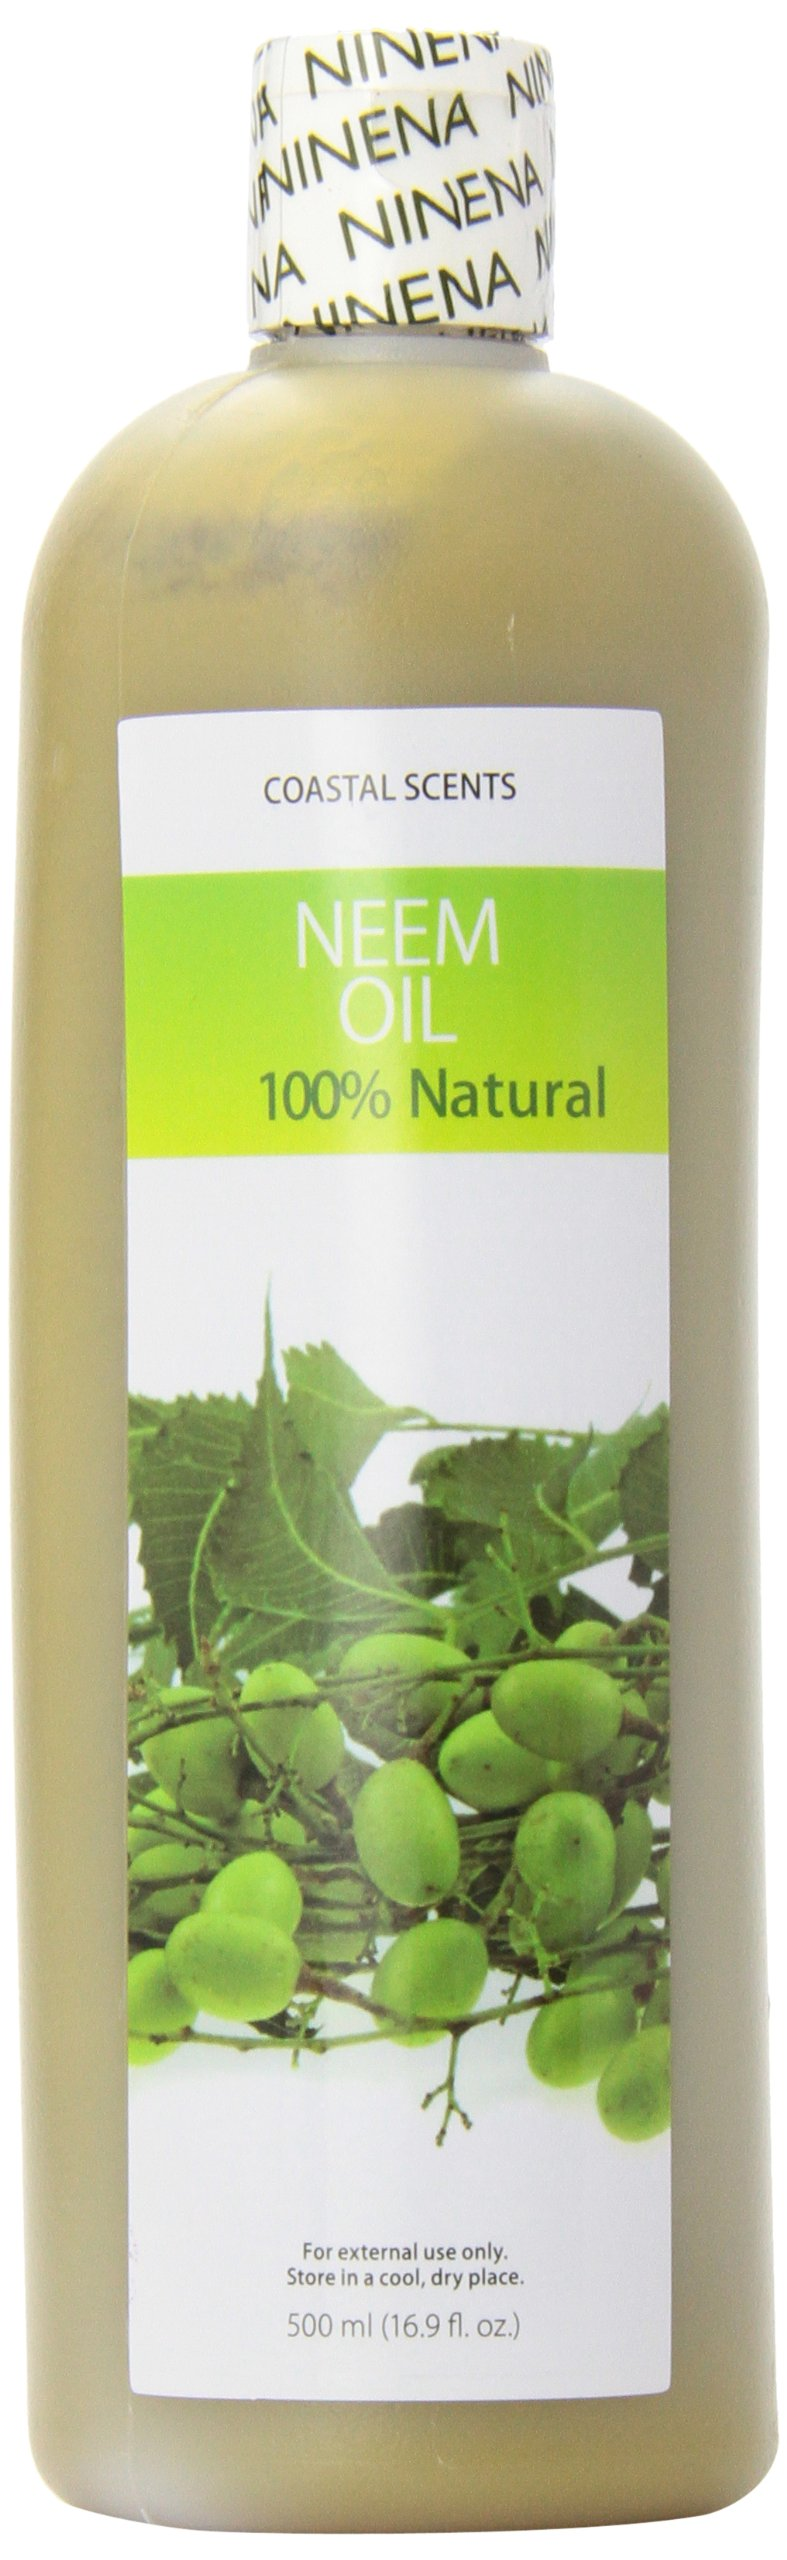 Coastal Scents 100% Pure and Natural Neem Oil (OL-012)